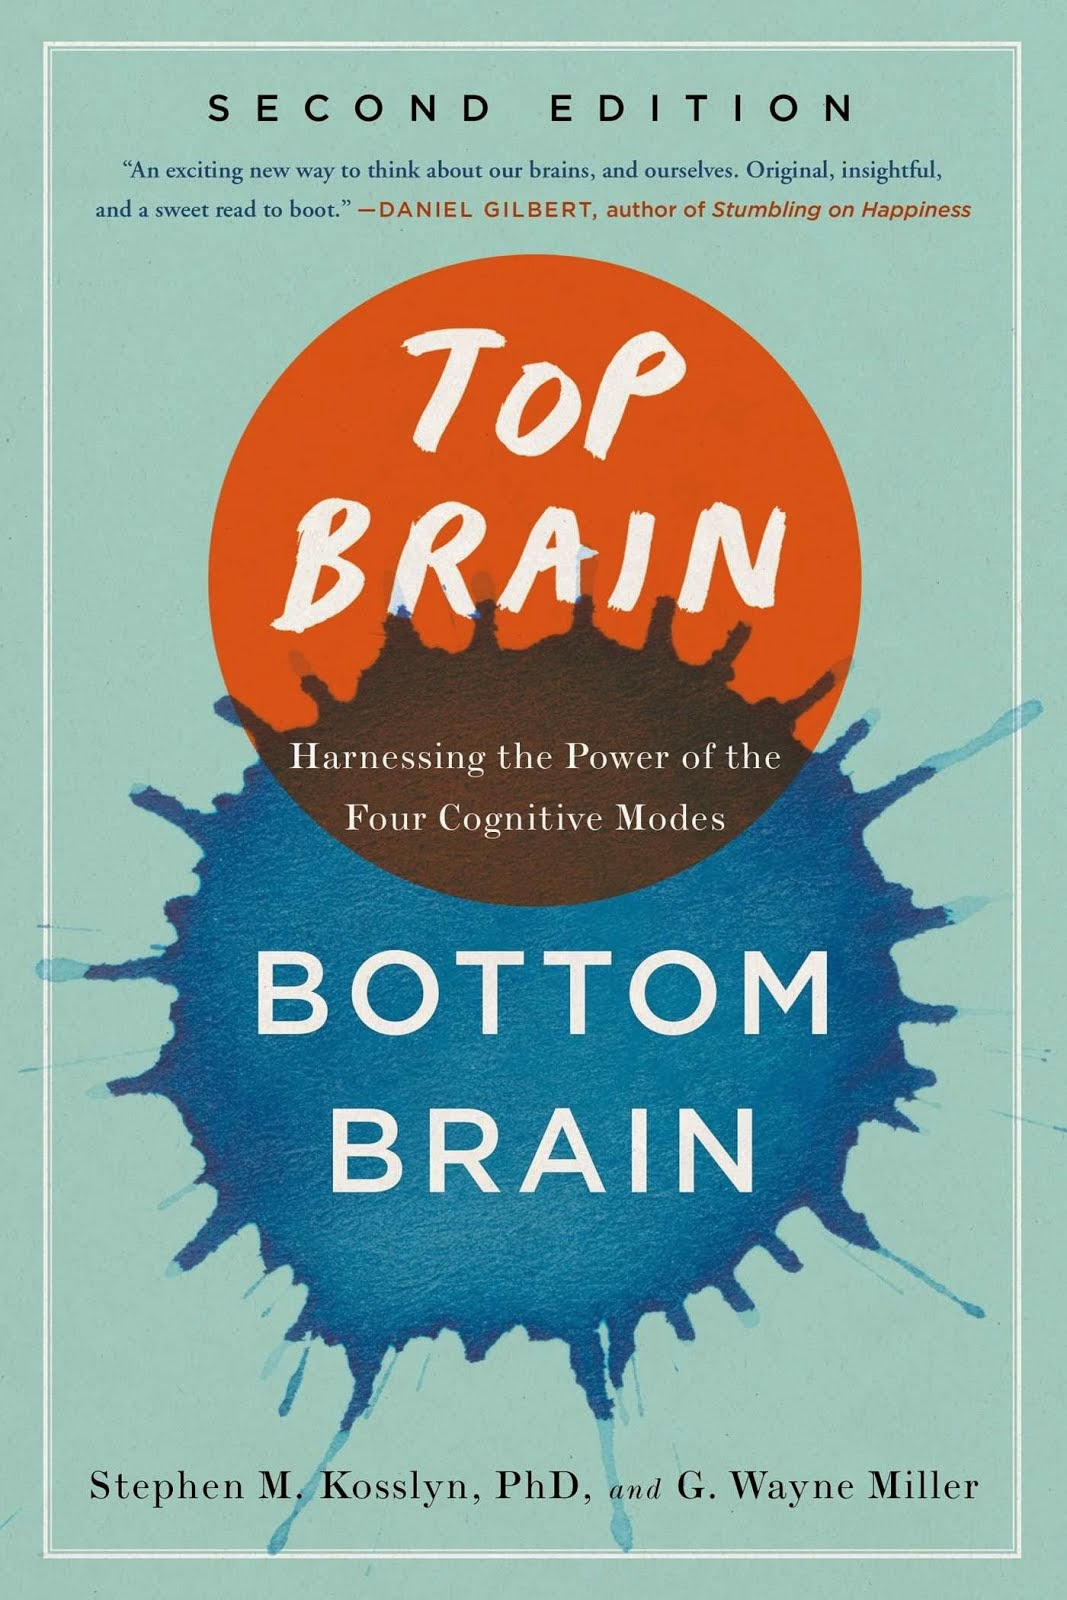 Top Brain, Bottom Brain: Surprising Insights Into How You Think